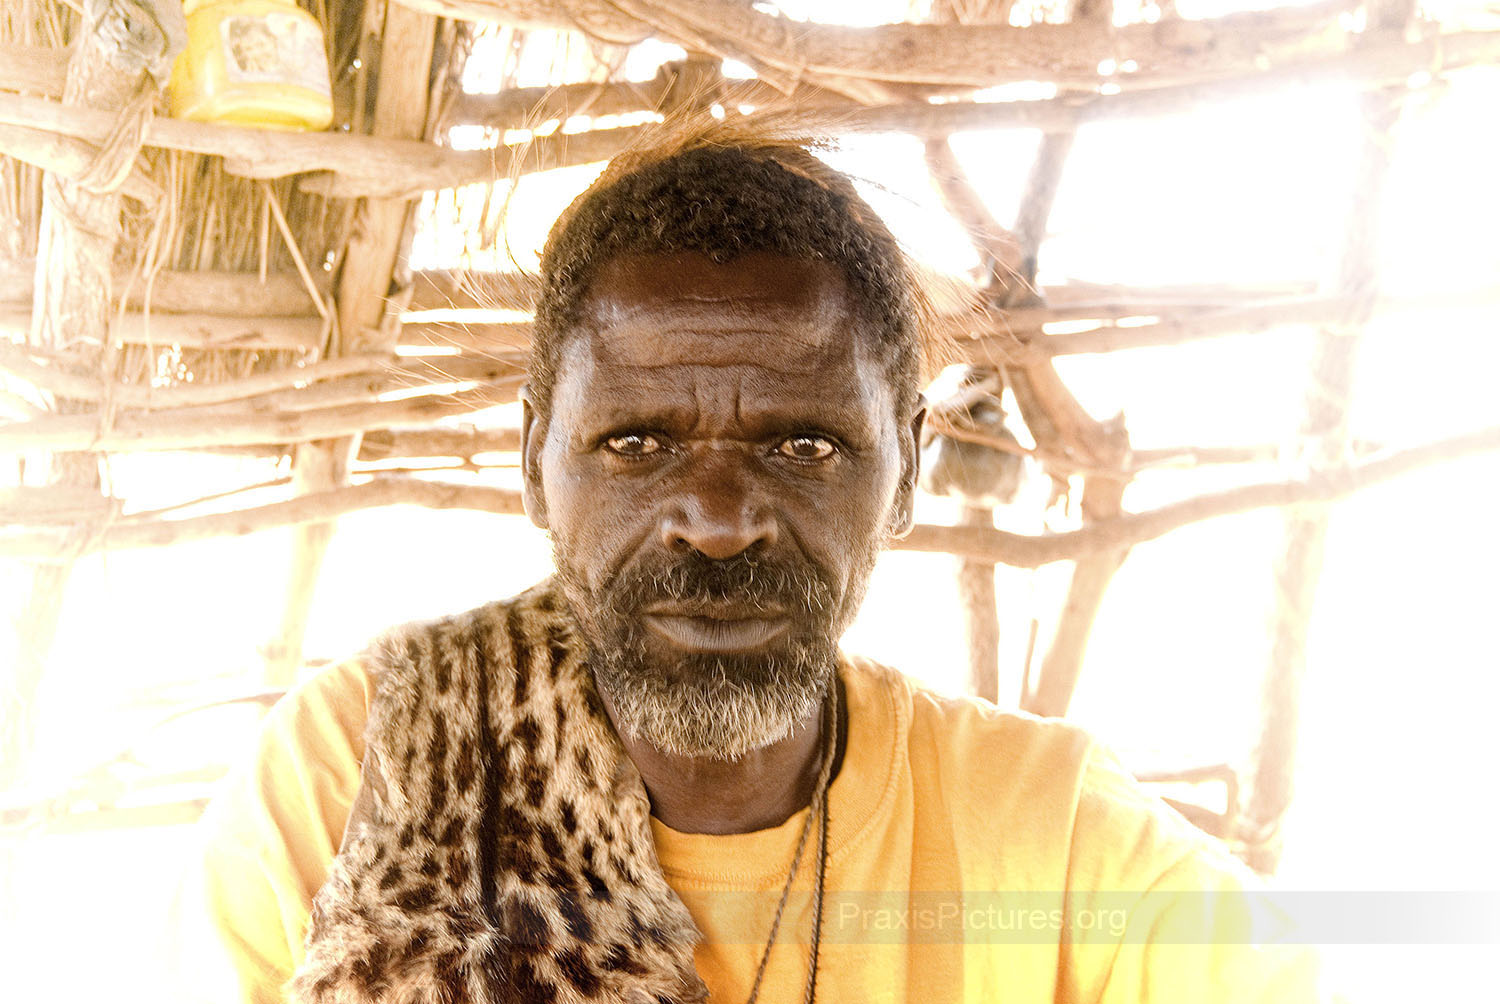 DEOGRATIOS - Deogratios is the traditional witchdoctor, or medicine man, of the community. He was among the thousands of people who were evicted to make way for Barrick's Bulynhulu gold mine. He remembers being forced from their home by heavily armed paramilitary forces only one day after the Minister of Minerals and Energy had issued an order giving the Bulyanhulu residents one month to vacate the area.  Deogratios and his family had nowhere to go so for two months after being forced from their home they were living in the bush. During this time his wife became ill. But with their home destroyed, and without access to his medicines, the healer could do nothing as he sat and watched his wife die.